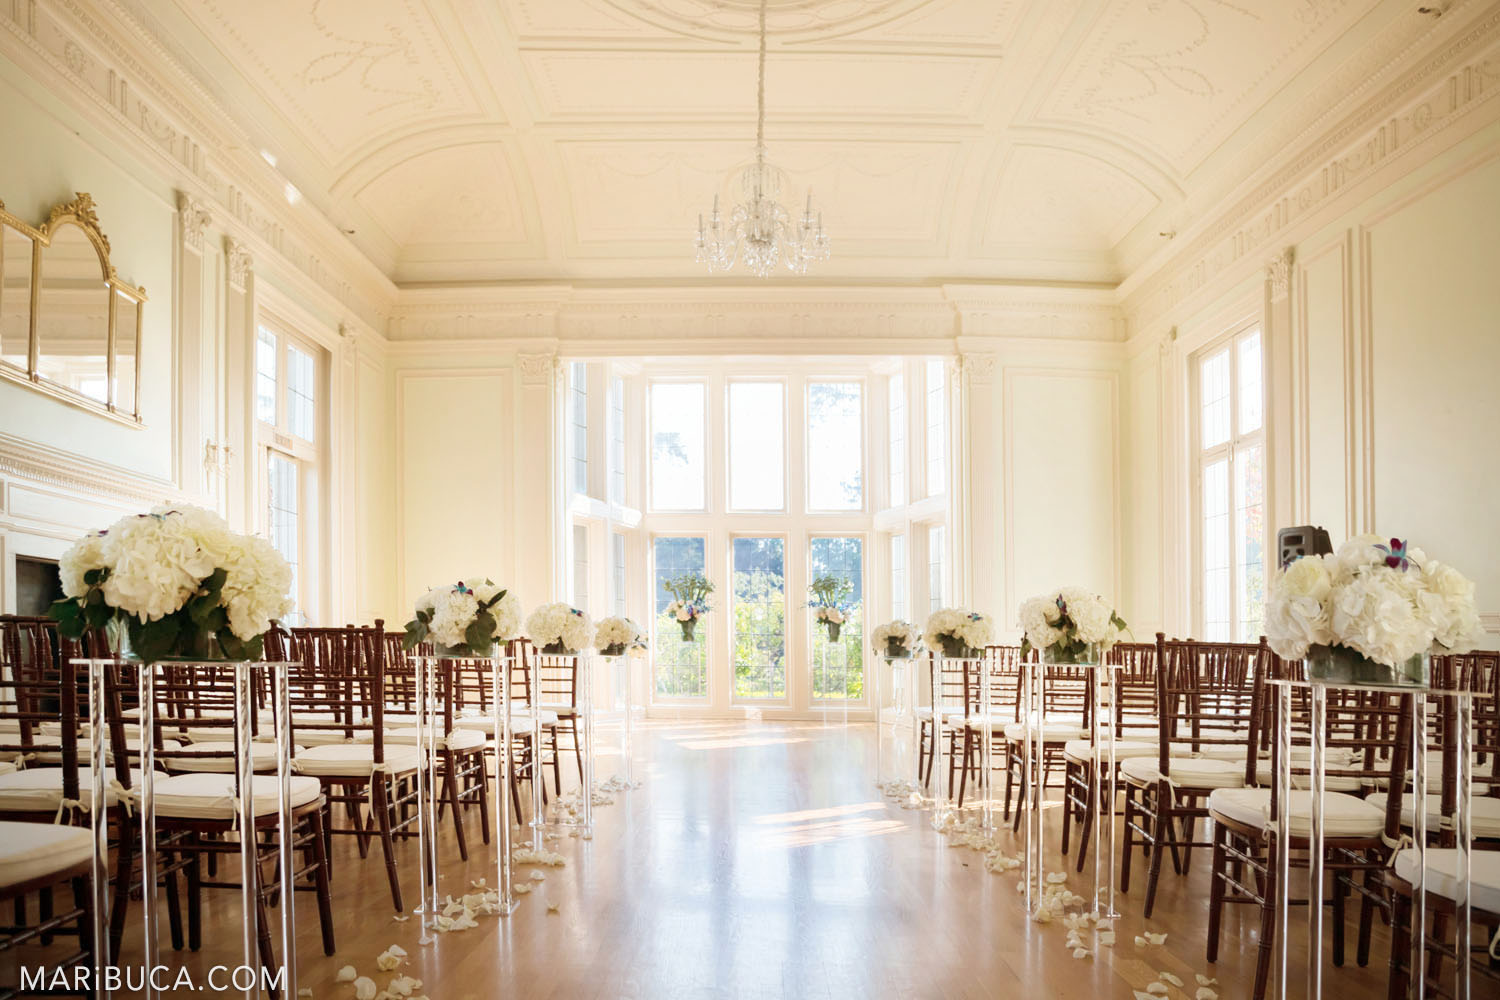 Wedding ceremony decoration such as with white flowers stand in the high vases and big light windows and ceilings in the sunny day, Dining room, Kohl Mansion, Burlingame